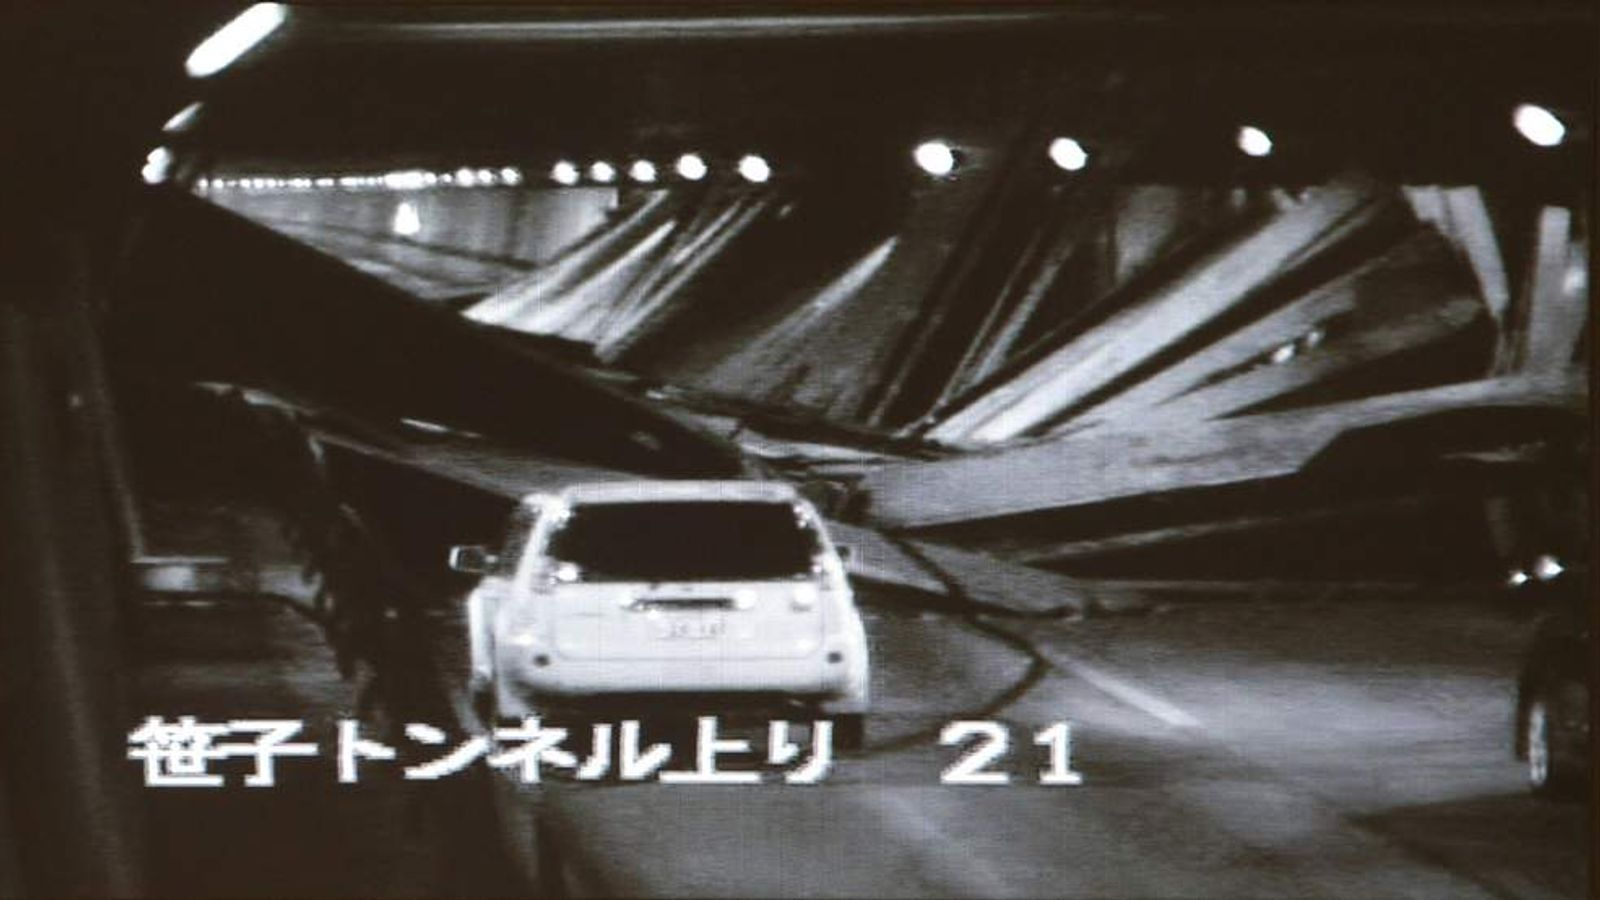 JAPAN-ROAD-ACCIDENT-TUNNEL-FIRE